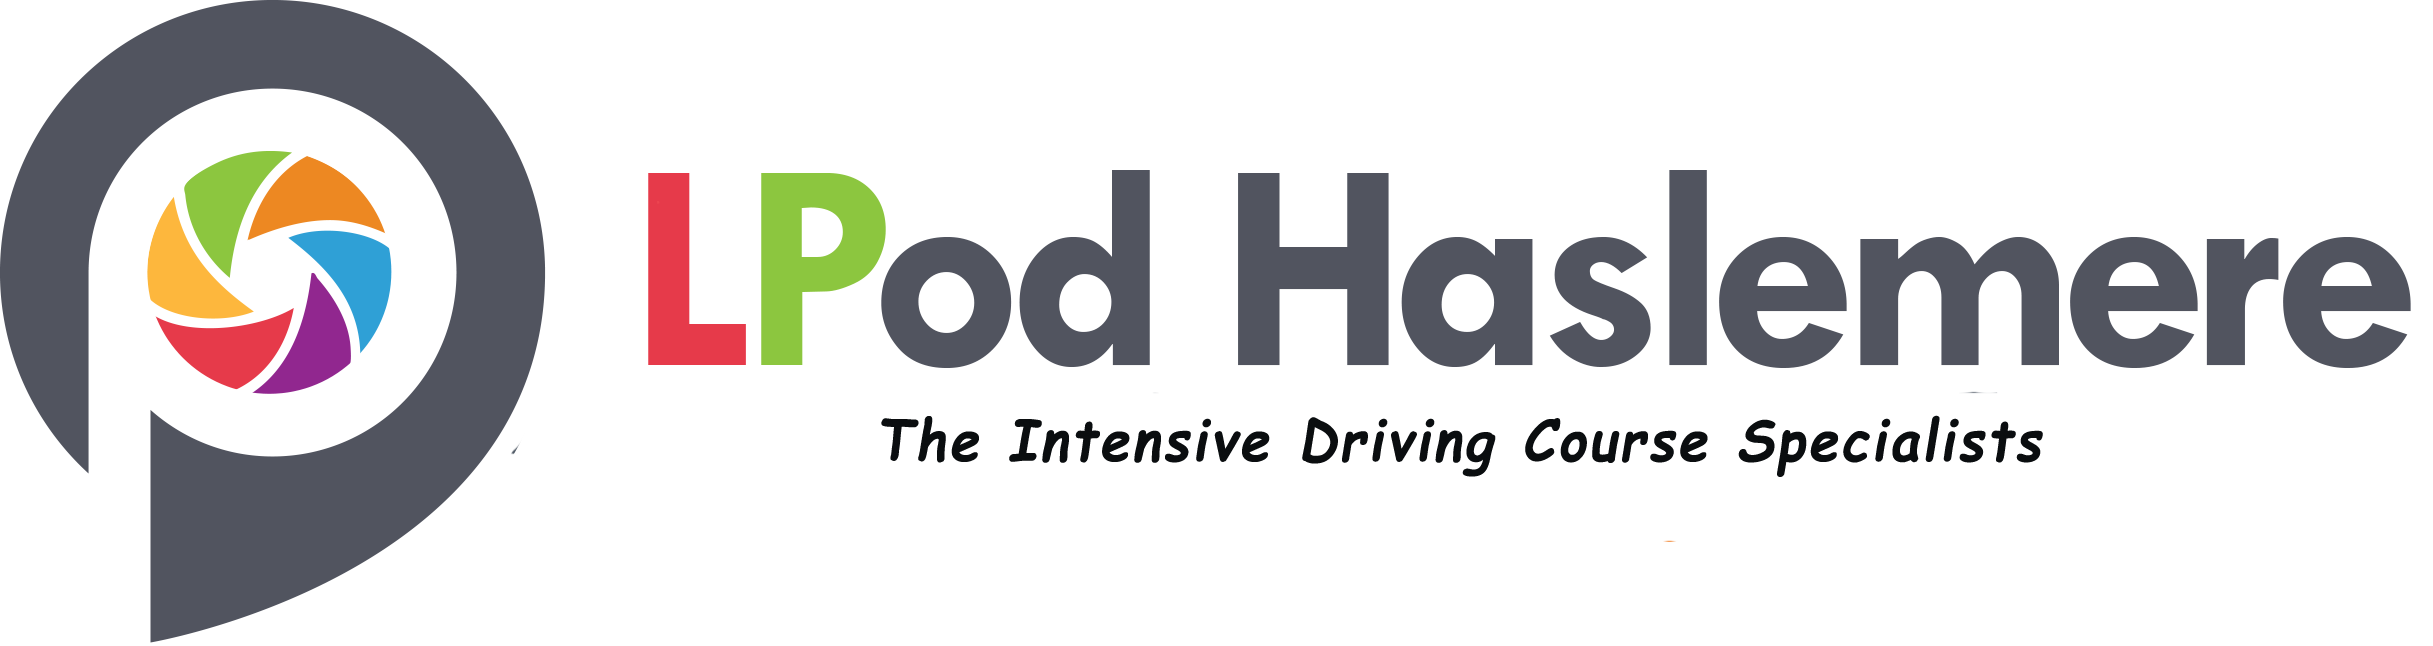 intensive driving courses haslemere, one week driving courses haslemere, crash driving courses haslemere, LPOD Academy Haslemere